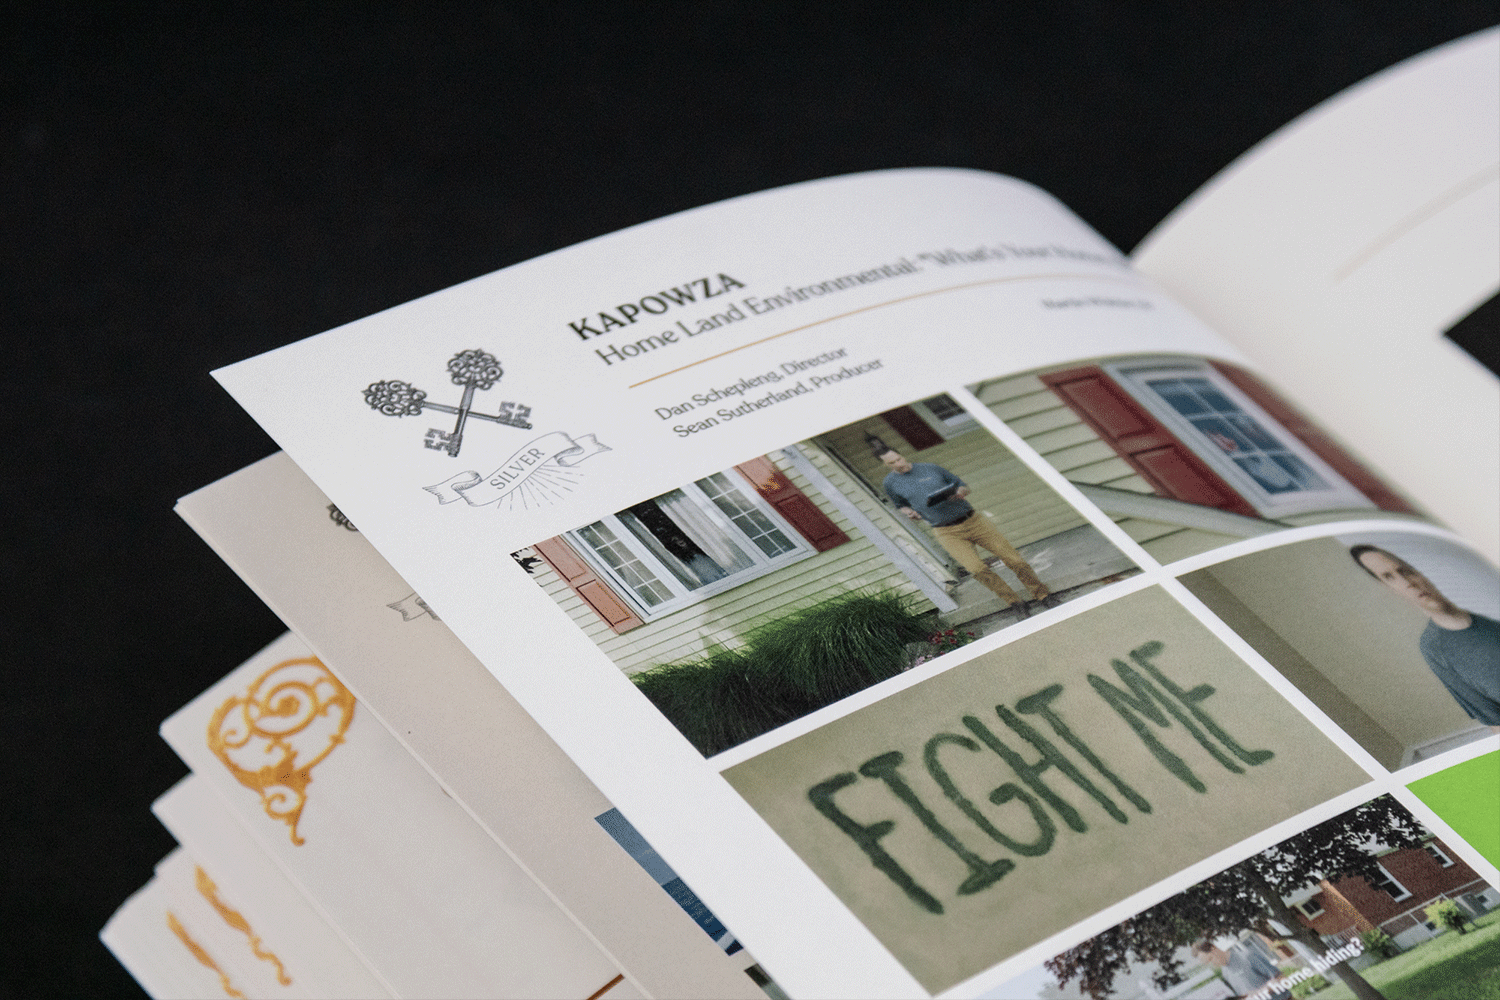 Photograph of a book open to a page that shows a silver award winner.